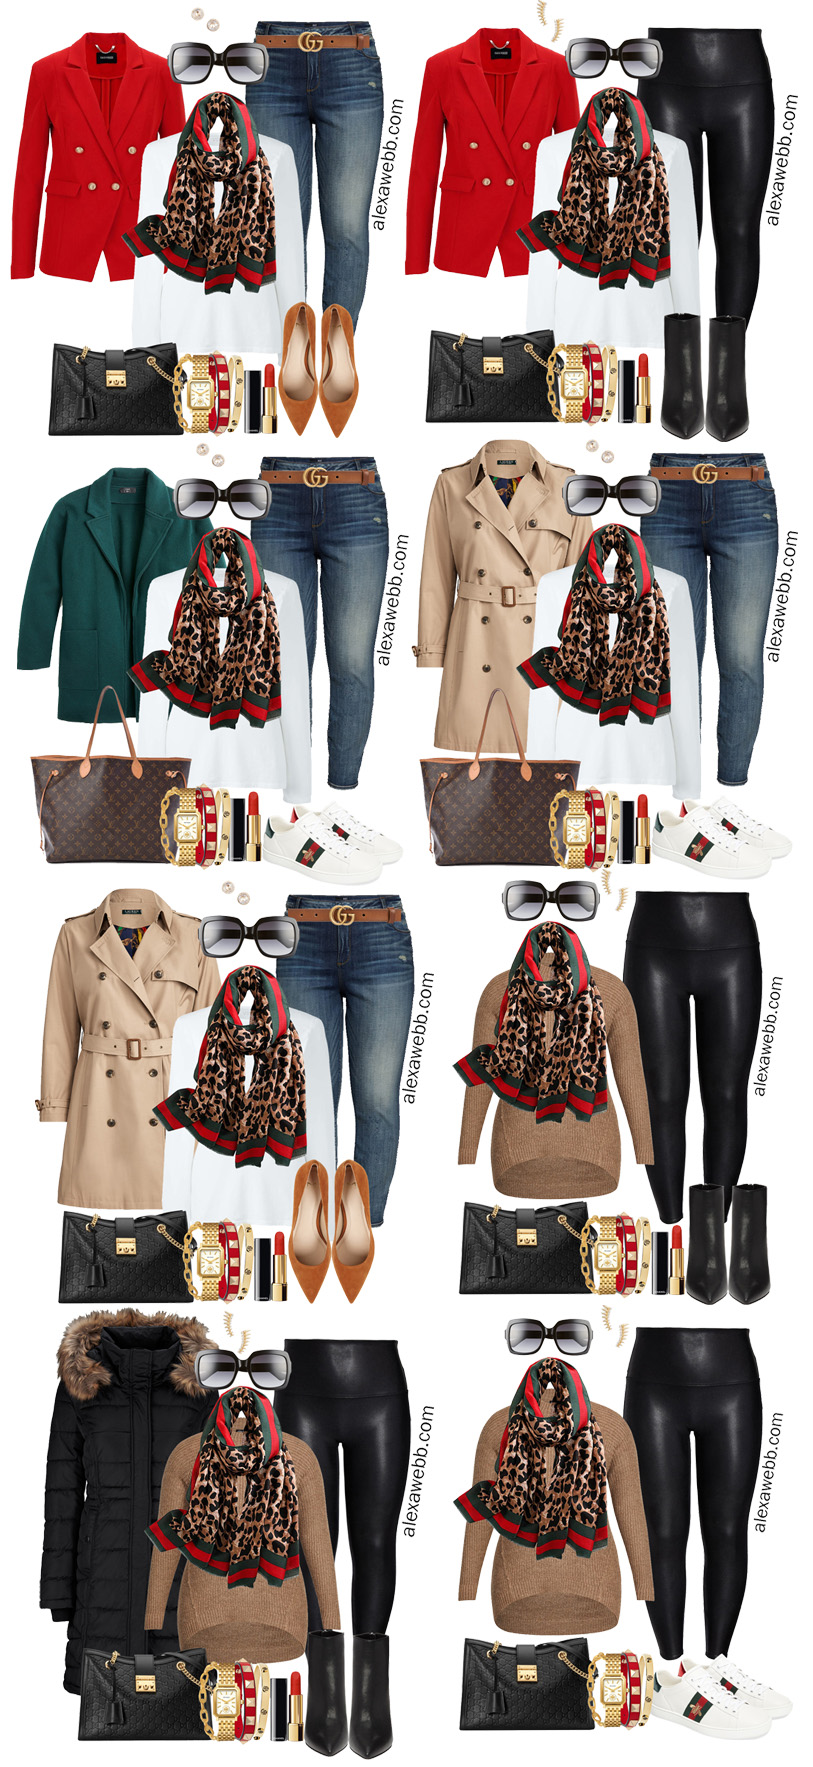 Plus Size Gucci Scarf Outfit Ideas - Jeans, Gucci Belt, Red Blazer, White T-Shirt - Alexa Webb - Plus Size Fashion for Women - #alexawebb #plussize